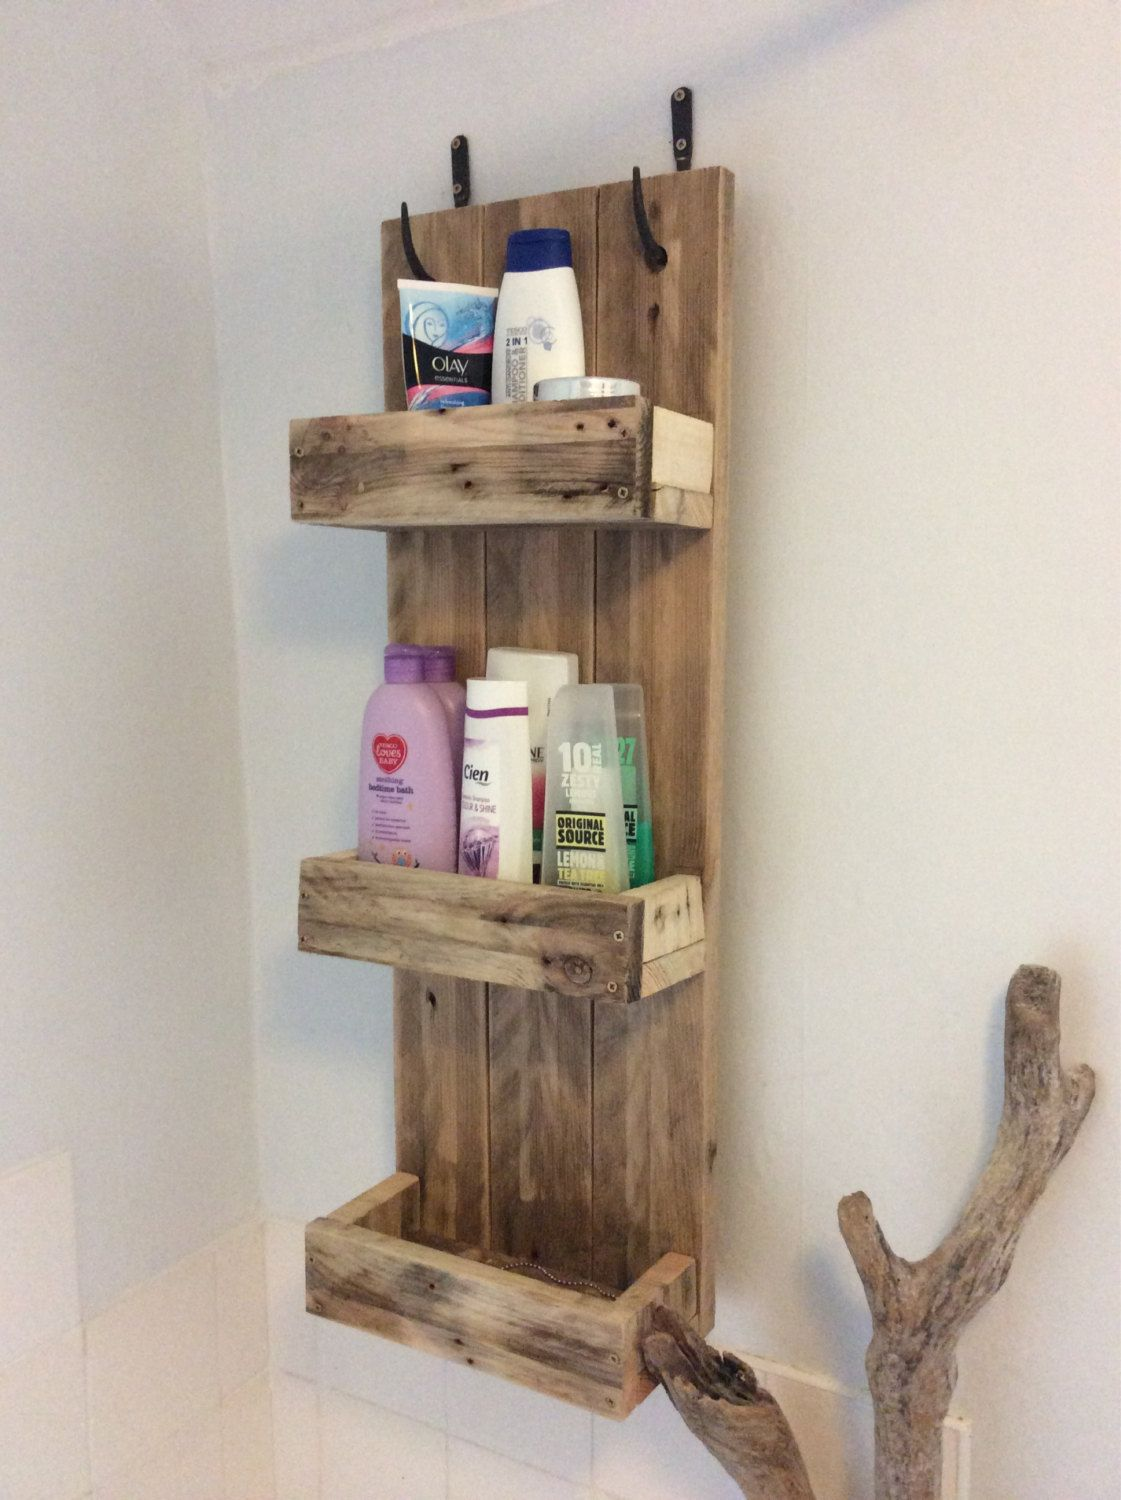 Medium Of Wooden Bathroom Shelf